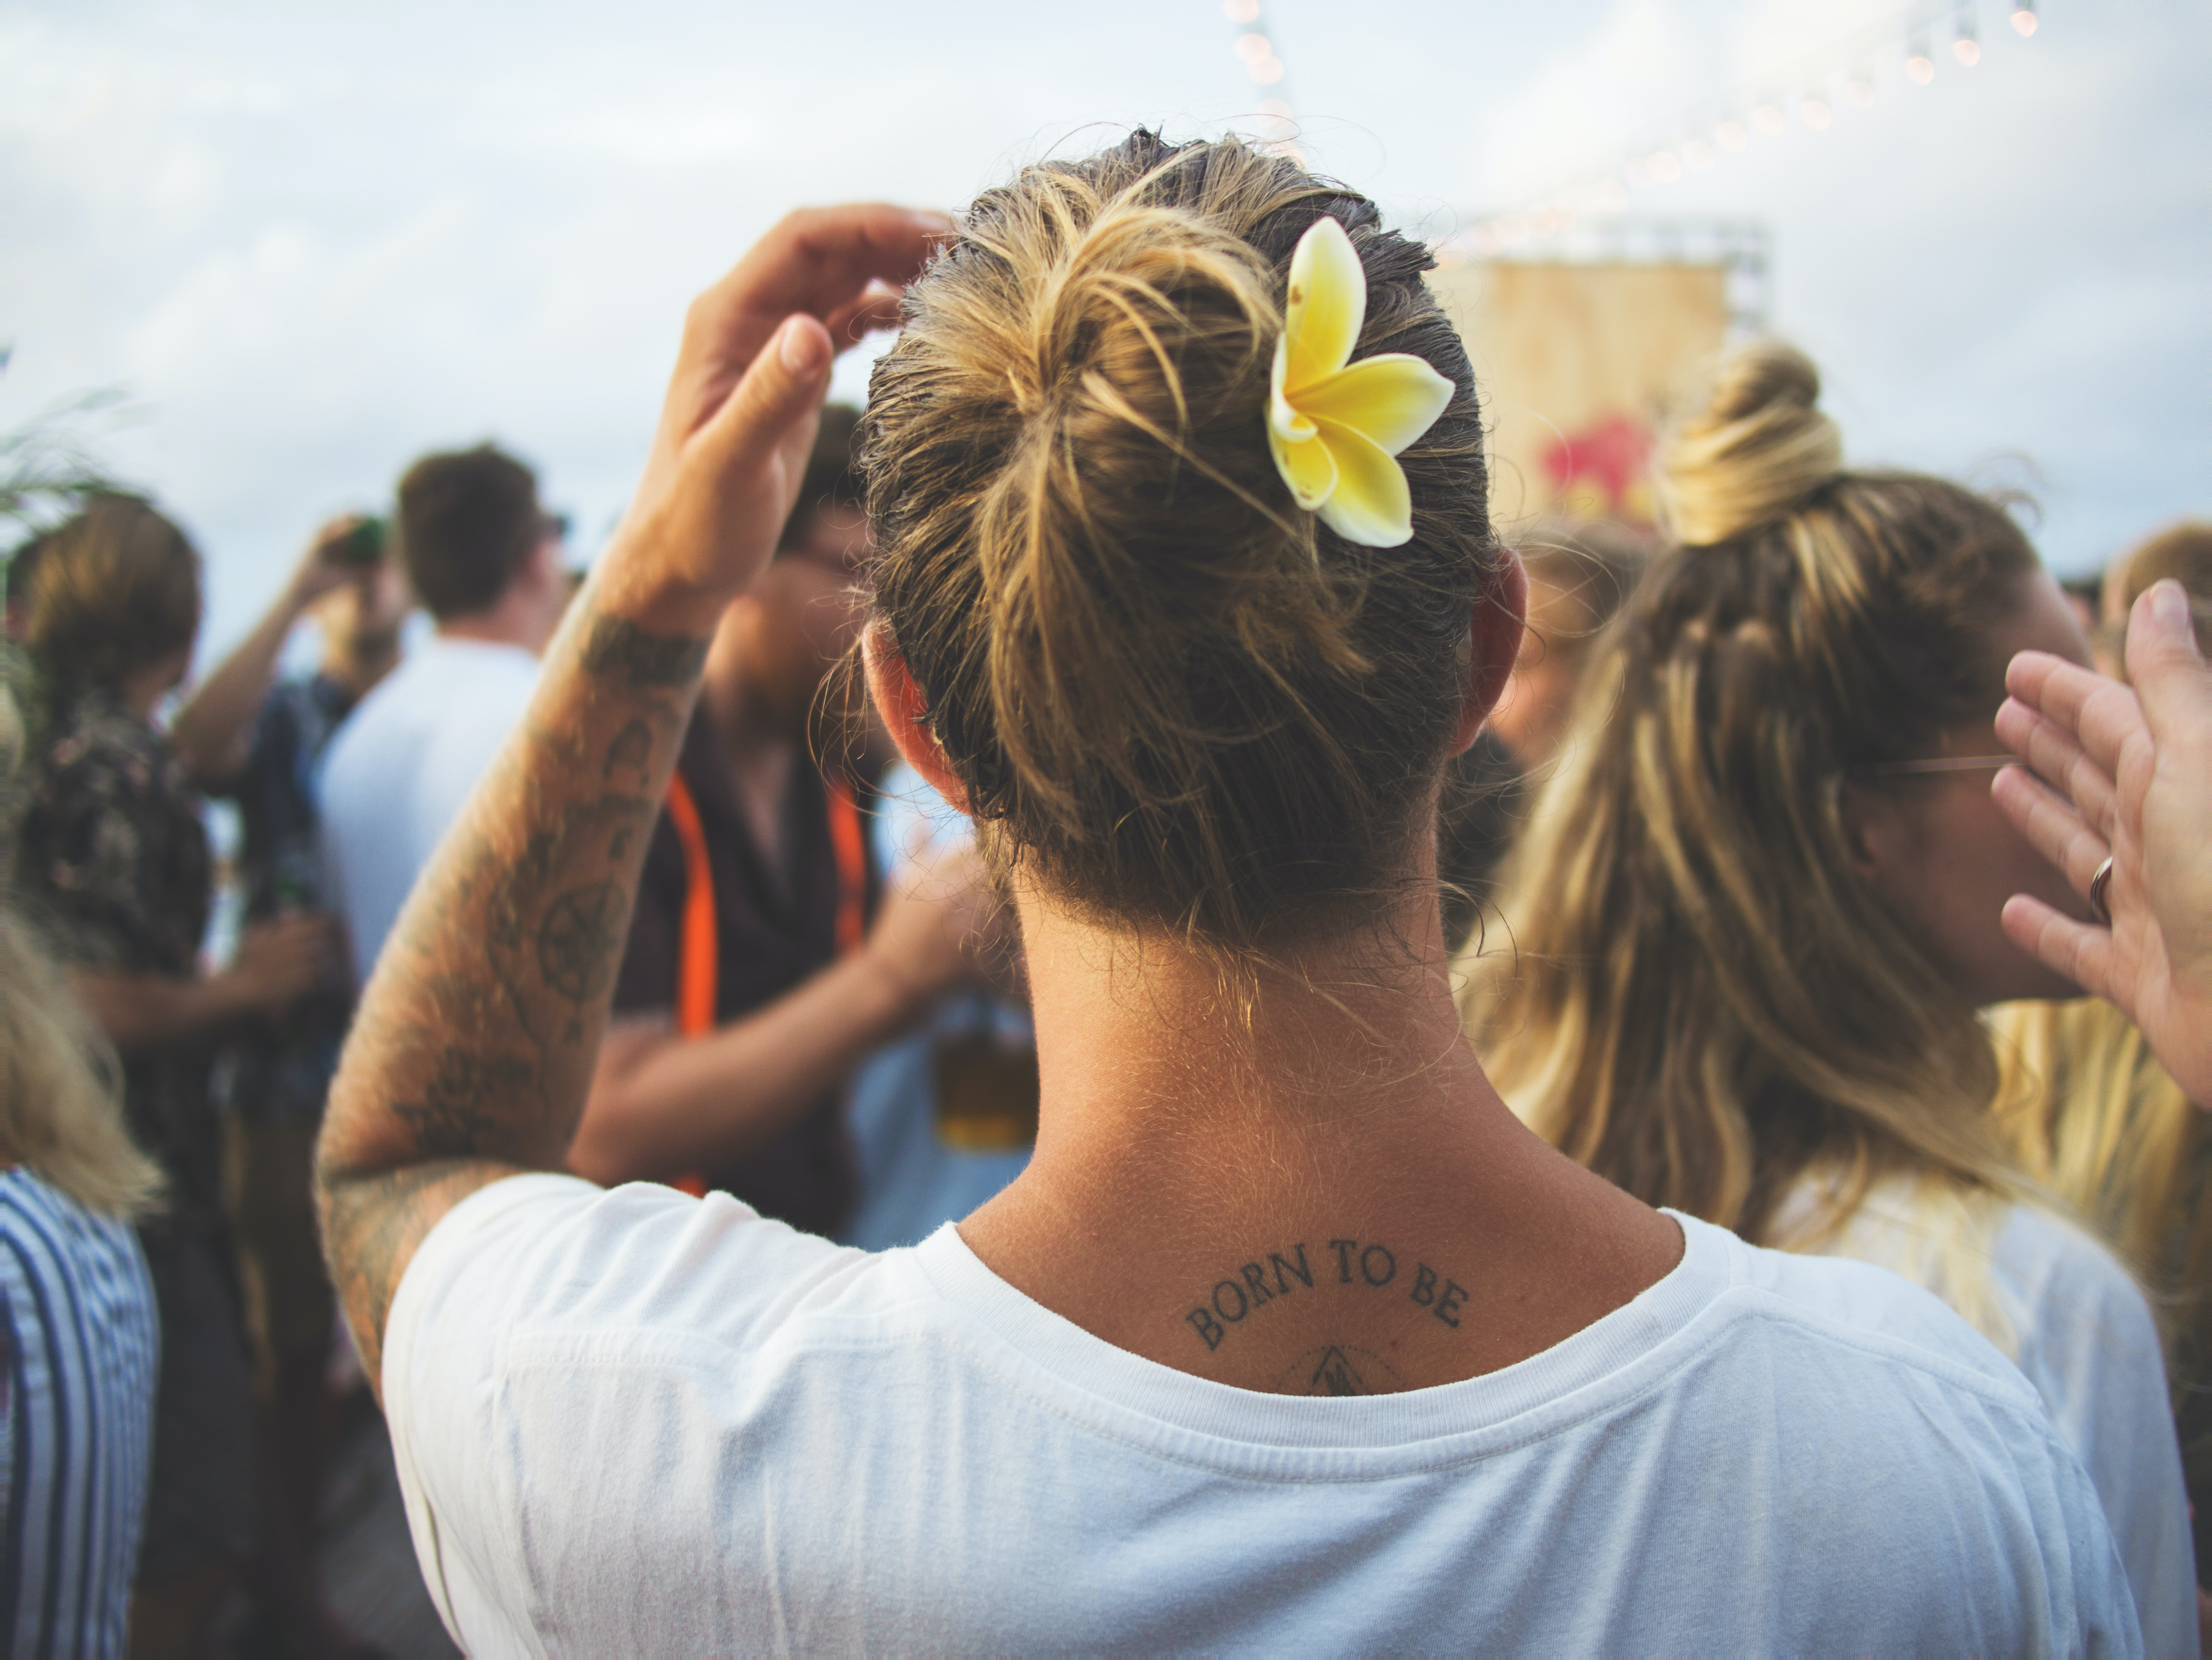 A person with tattoos and a flower in their hair looks toward a festival crowd